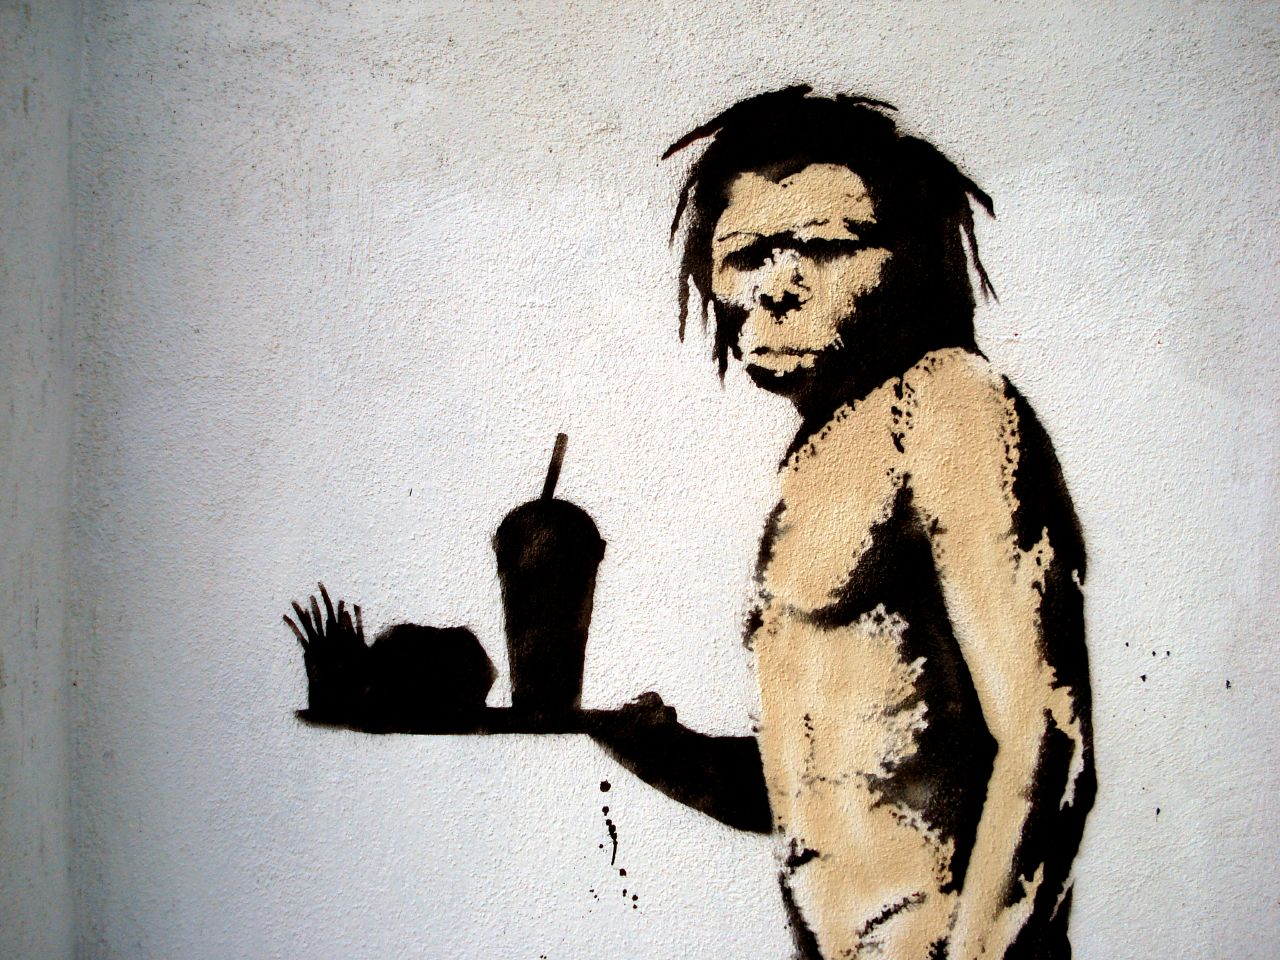 Paleo diet–is it all it's cracked up to be?